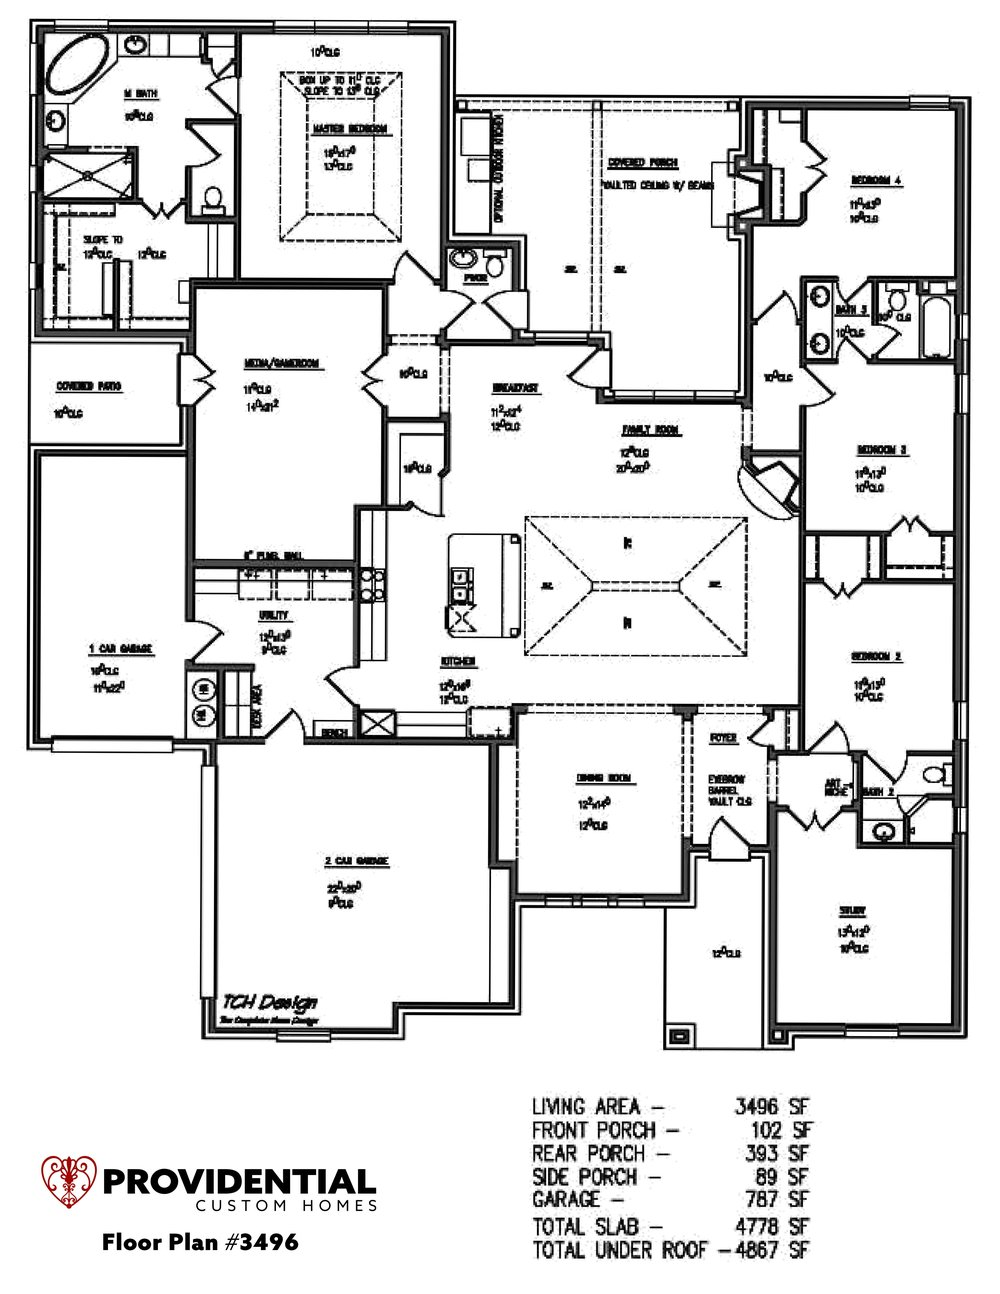 The FLOOR PLAN 3496.jpg